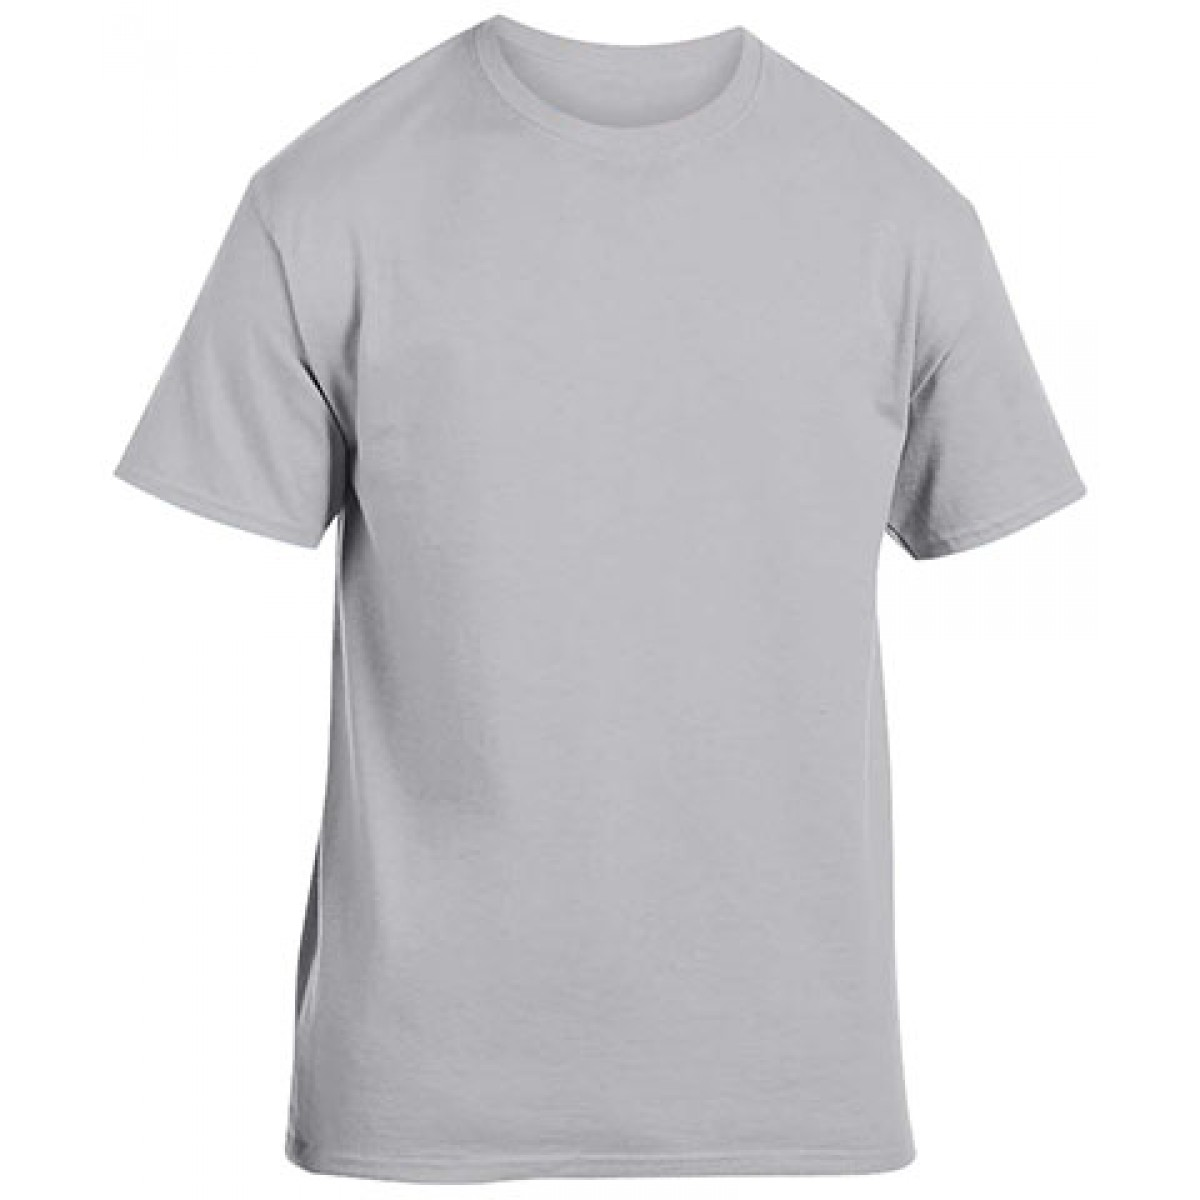 Heavy Cotton Activewear T-Shirt-Ash Gray-M